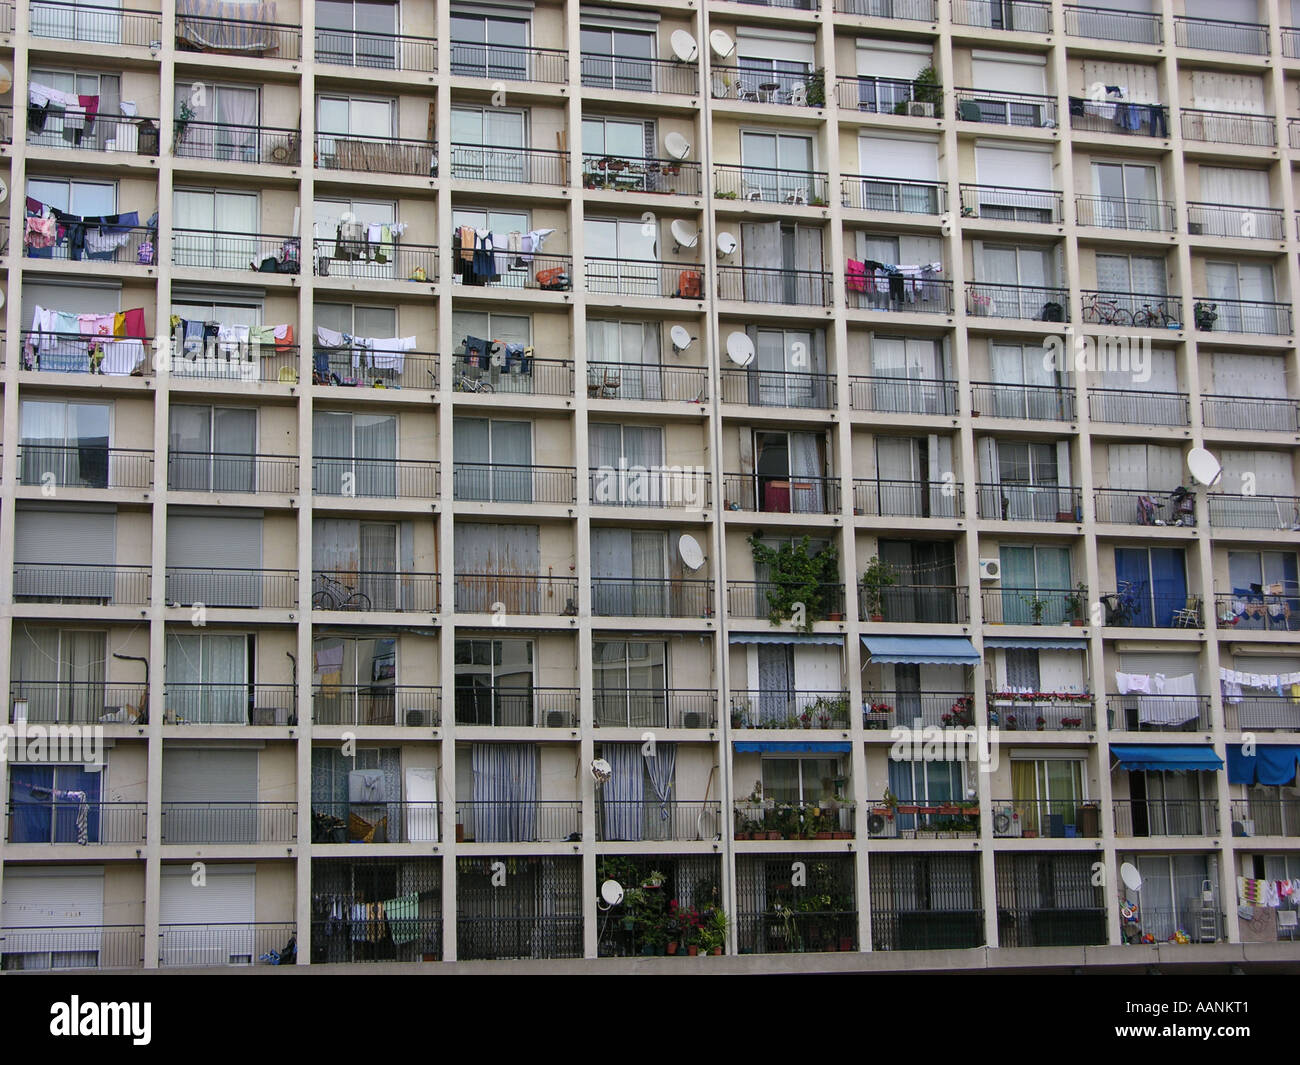 Council housing in Marseille, France - Stock Image